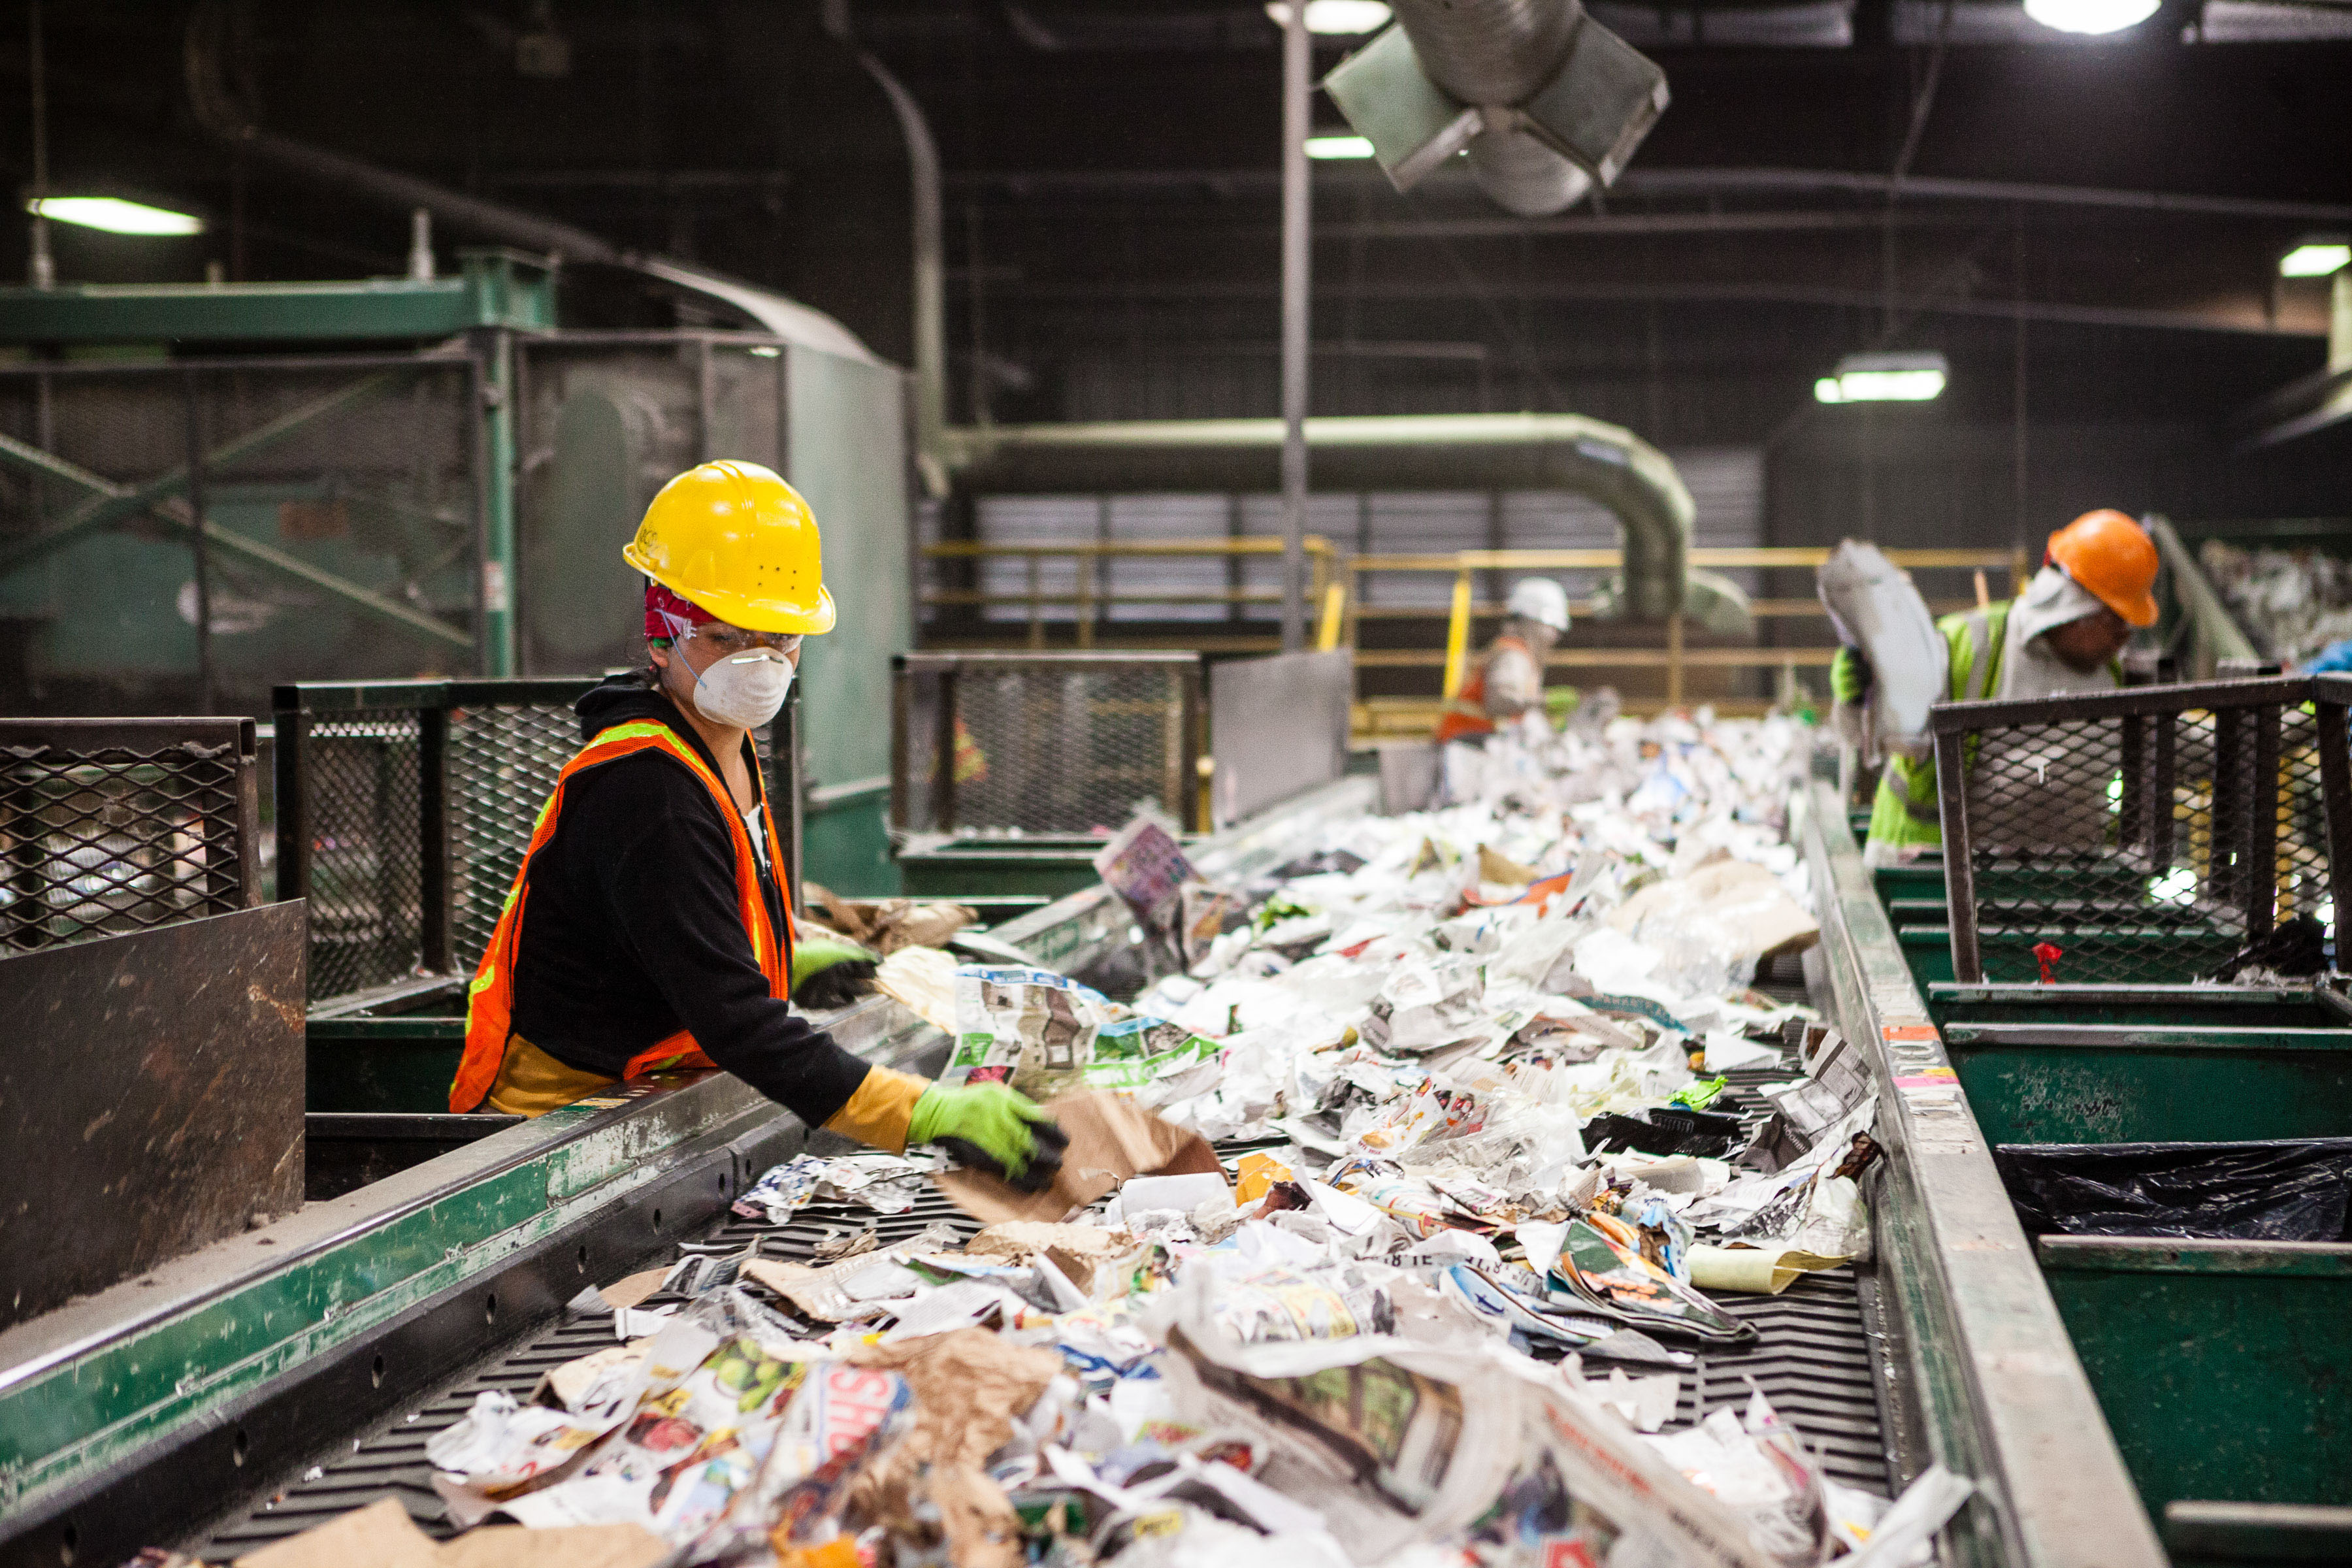 Employees at Farwest Fibers at work sorting paper